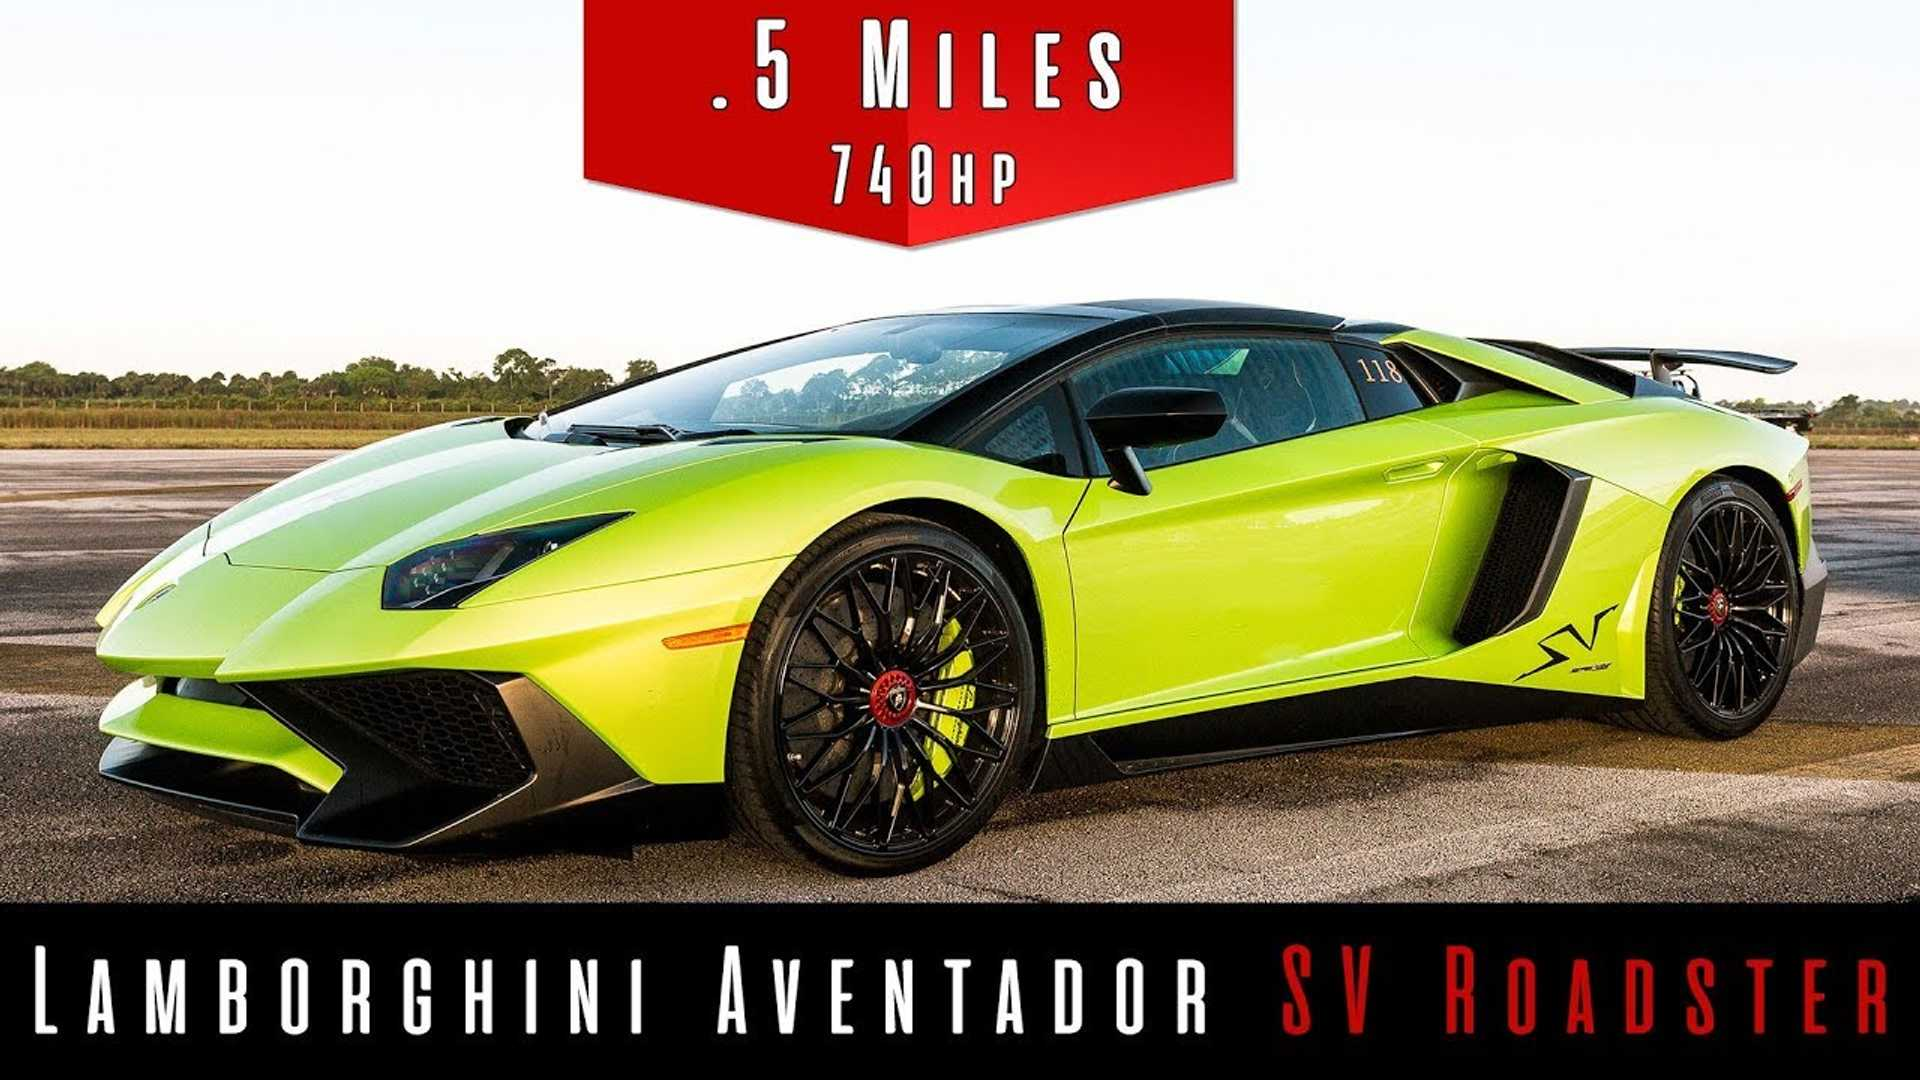 Watch Lamborghini Aventador Sv Roadster Hit 160 Mph In Half A Mile